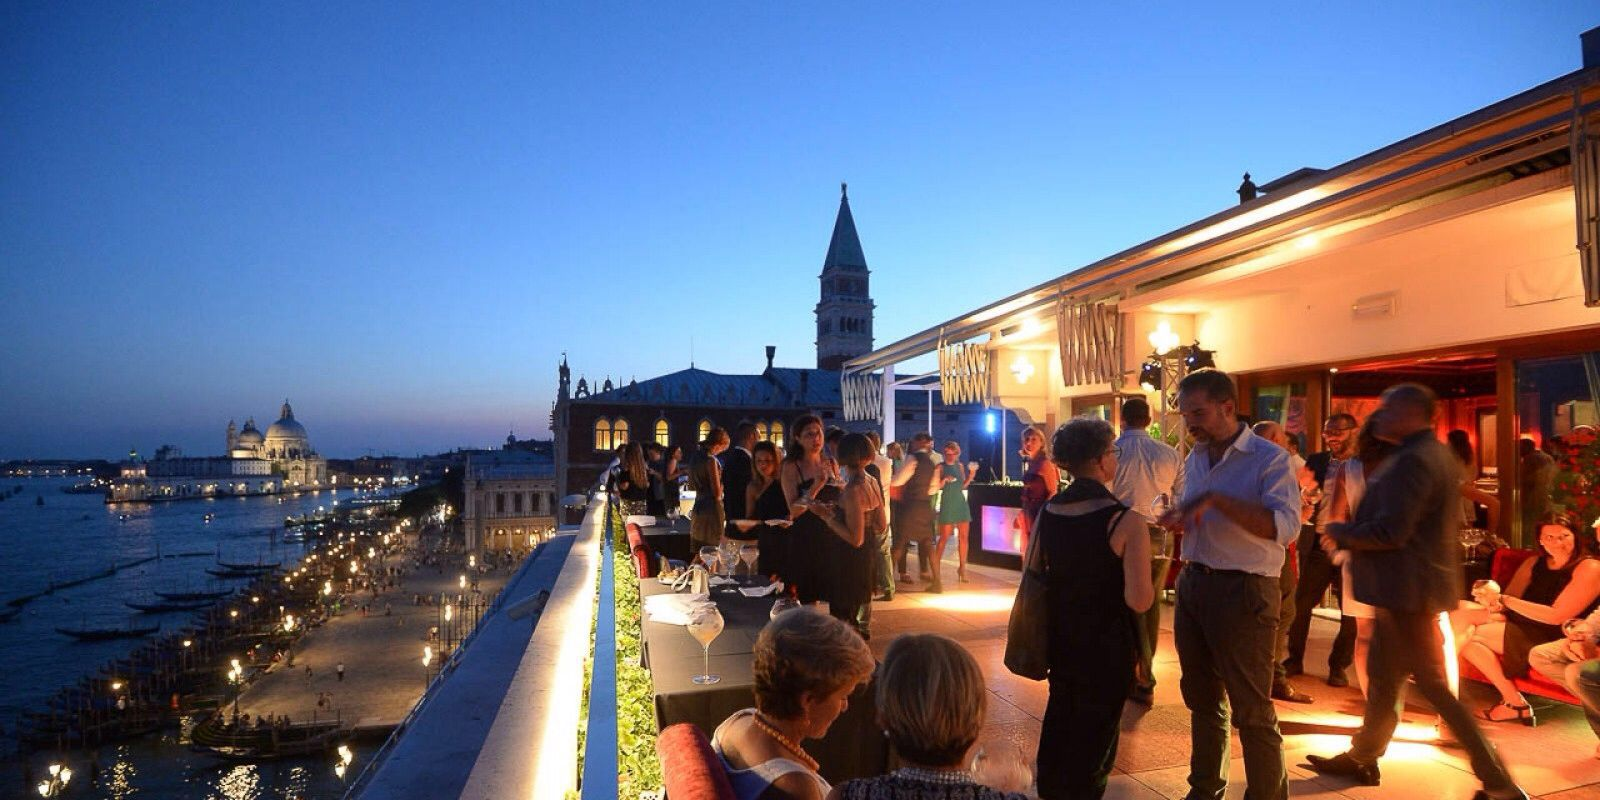 Awesome Terrazza Danieli Venezia Photos - Idee Arredamento Casa ...